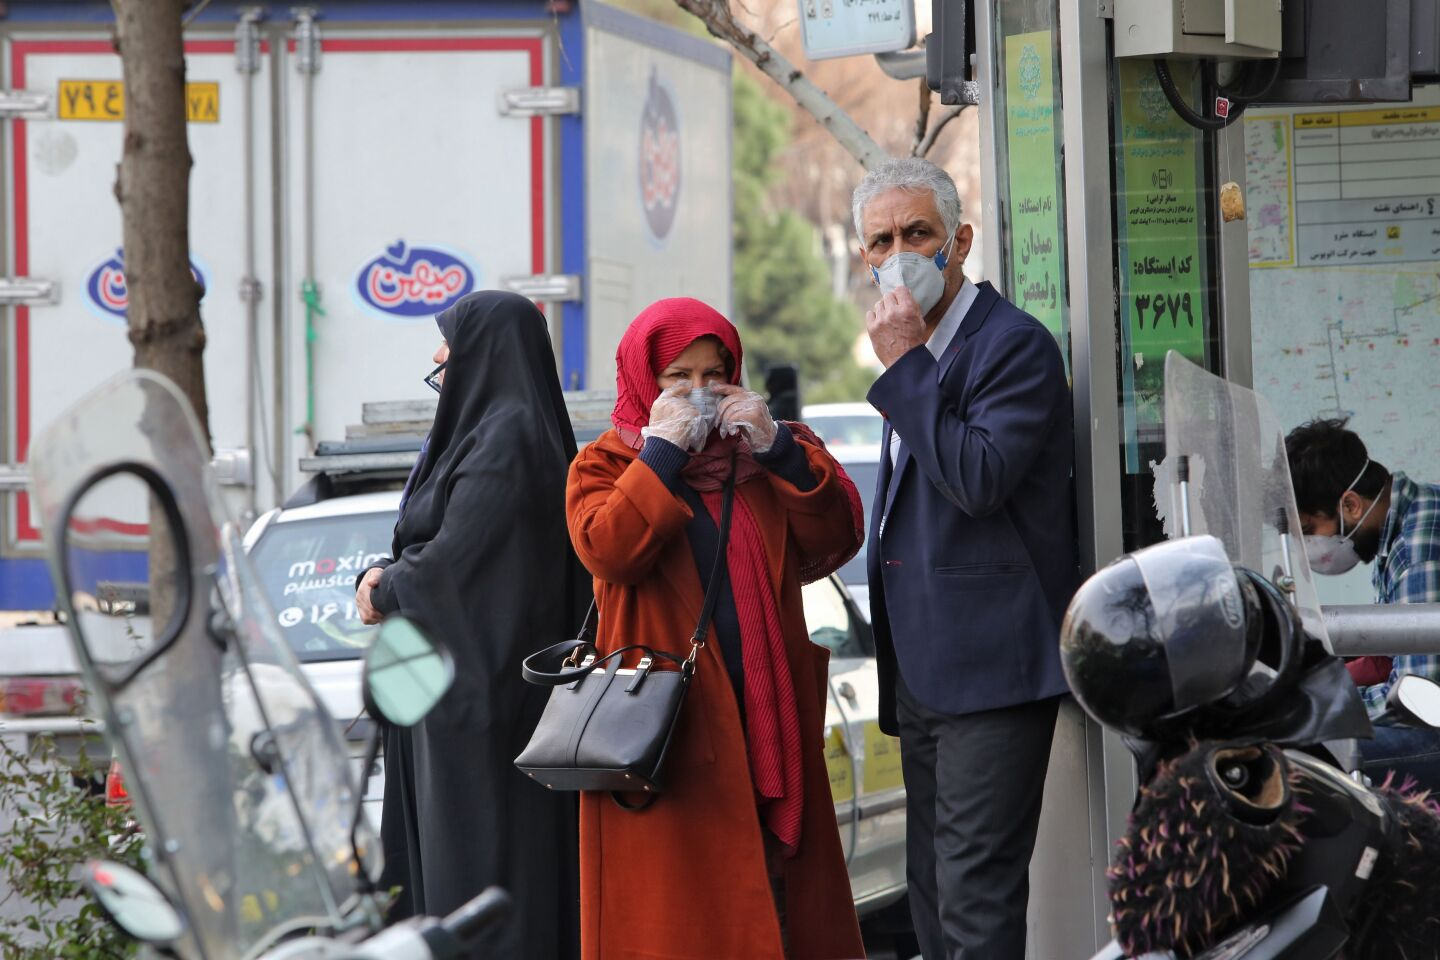 People wearing protective masks wait along the side of a street in the Iranian capital Tehran on February 24, 2020